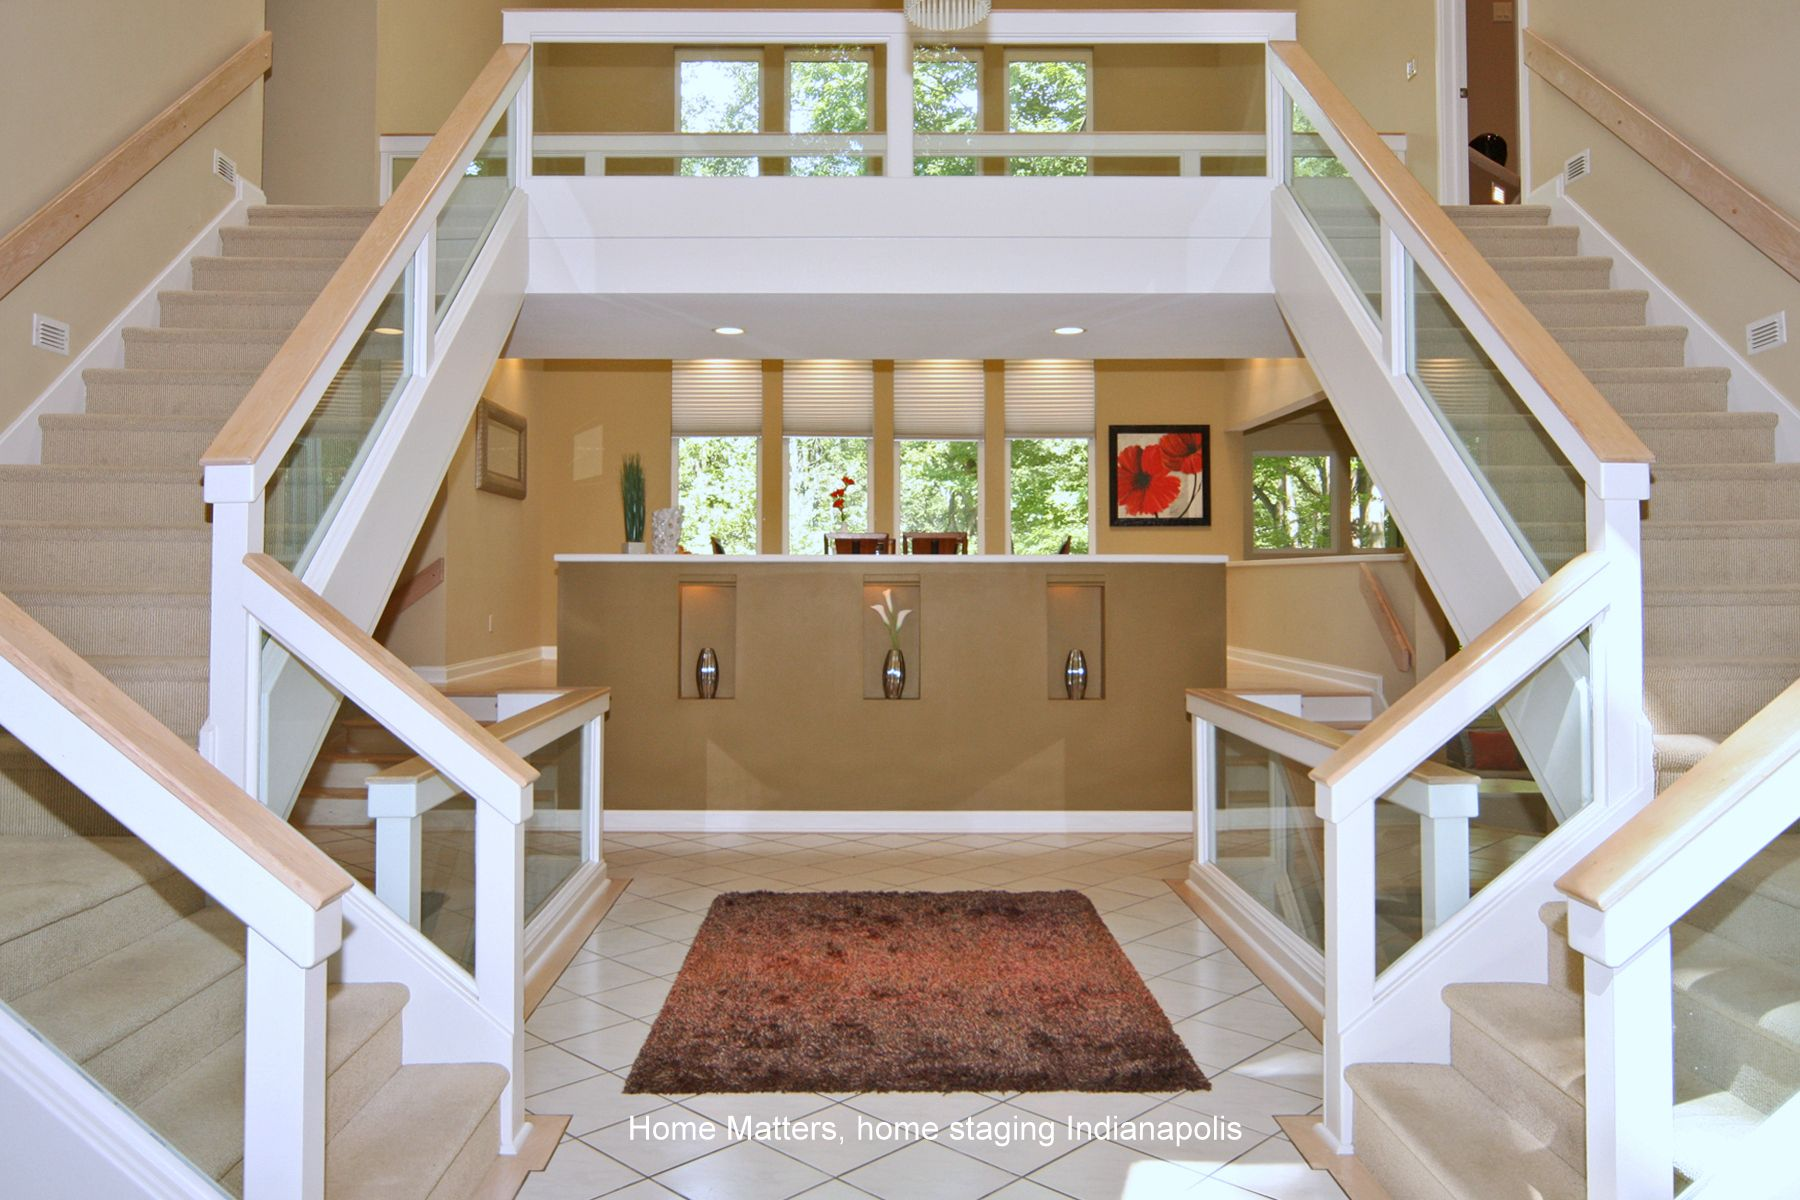 Home Matters home staging in Indianapolis Indiana | Home ...